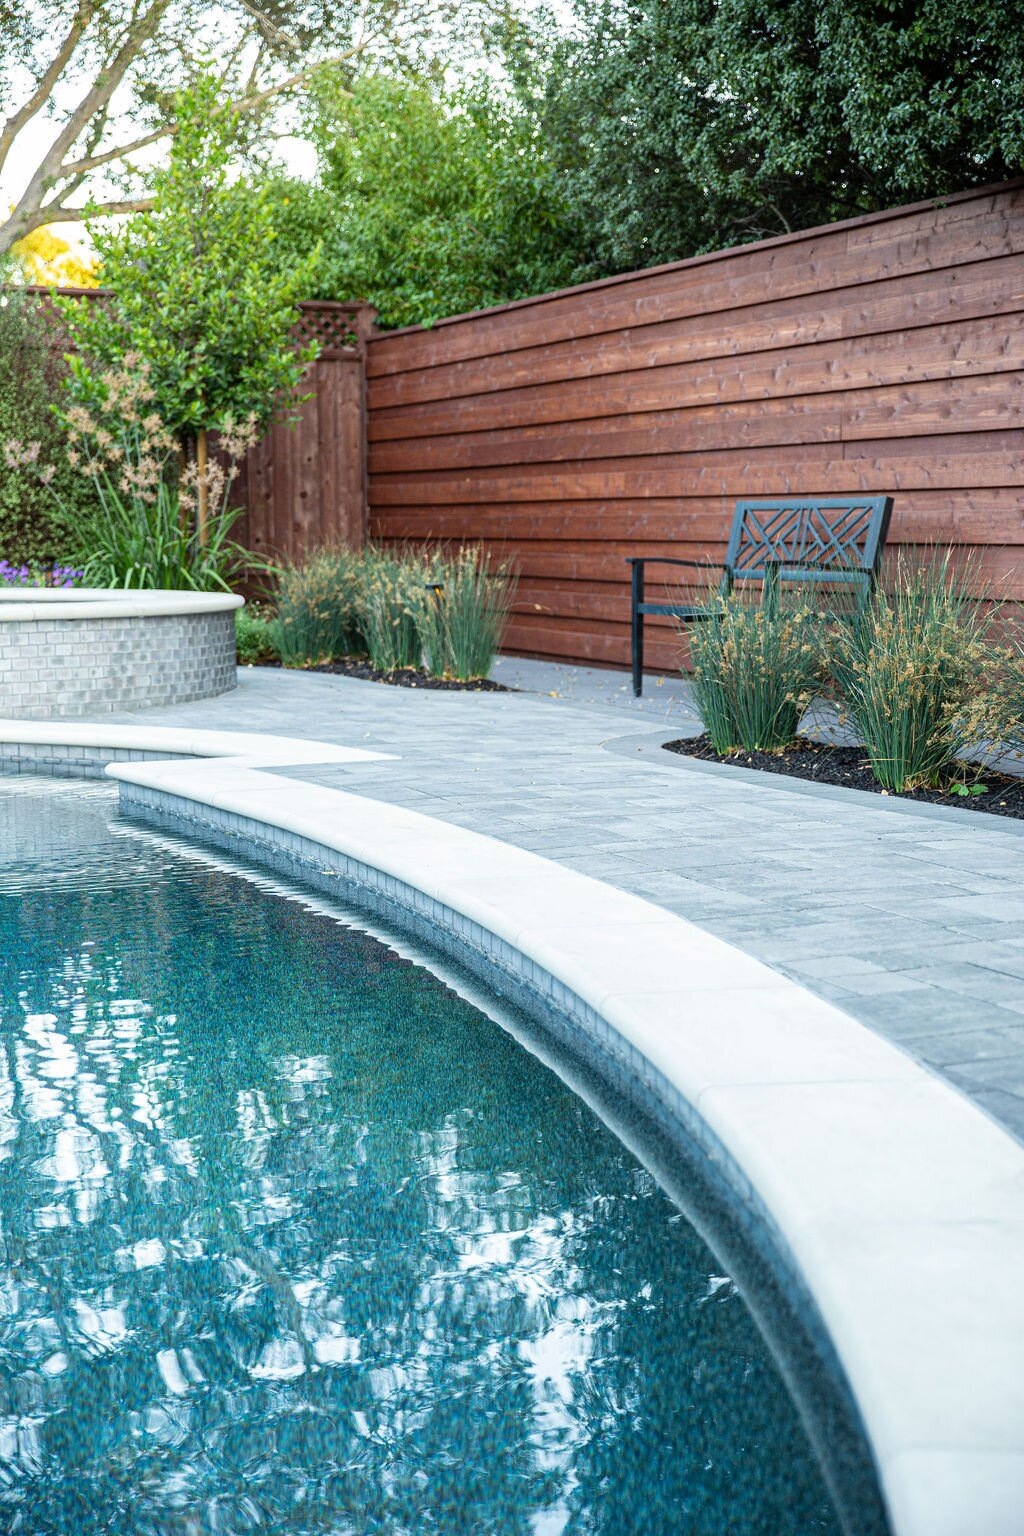 Outdoor, Back Yard, Small Pools, Tubs, Shower, Flowers, Shrubs, Hardscapes, Trees, Grass, Walkways, Gardens, Small Patio, Porch, Deck, Garden, Pavers Patio, Porch, Deck, Landscape Lighting, and Horizontal Fences, Wall Cohesion of materials.  Modern Suburban Backyard